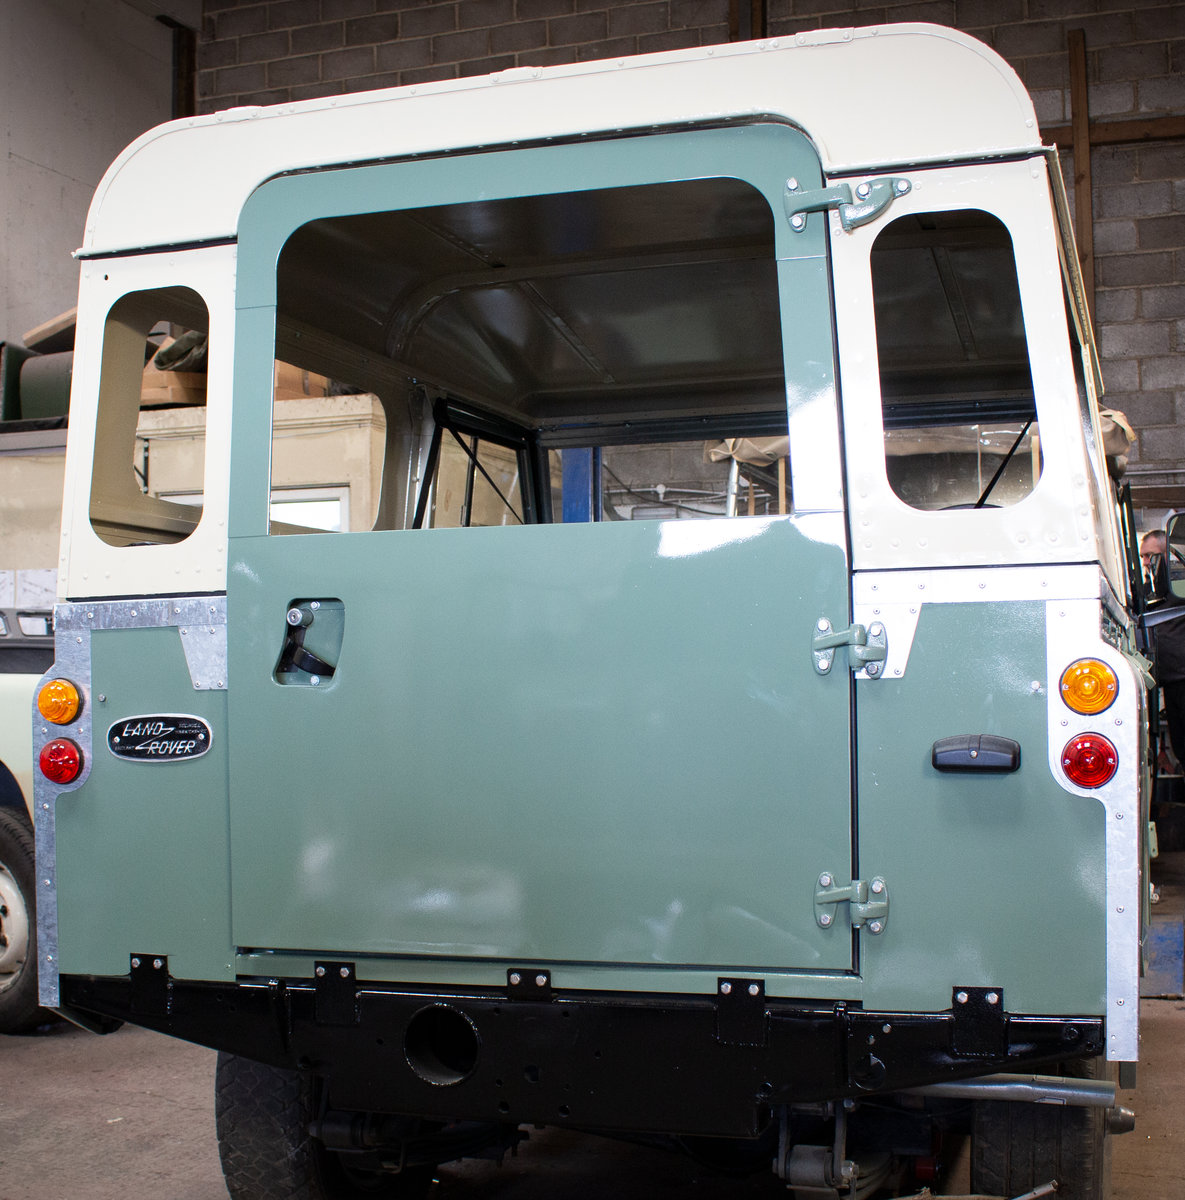 1974 Land Rover Series 3 2.25 petrol 6 Seater Restored! For Sale (picture 5 of 12)